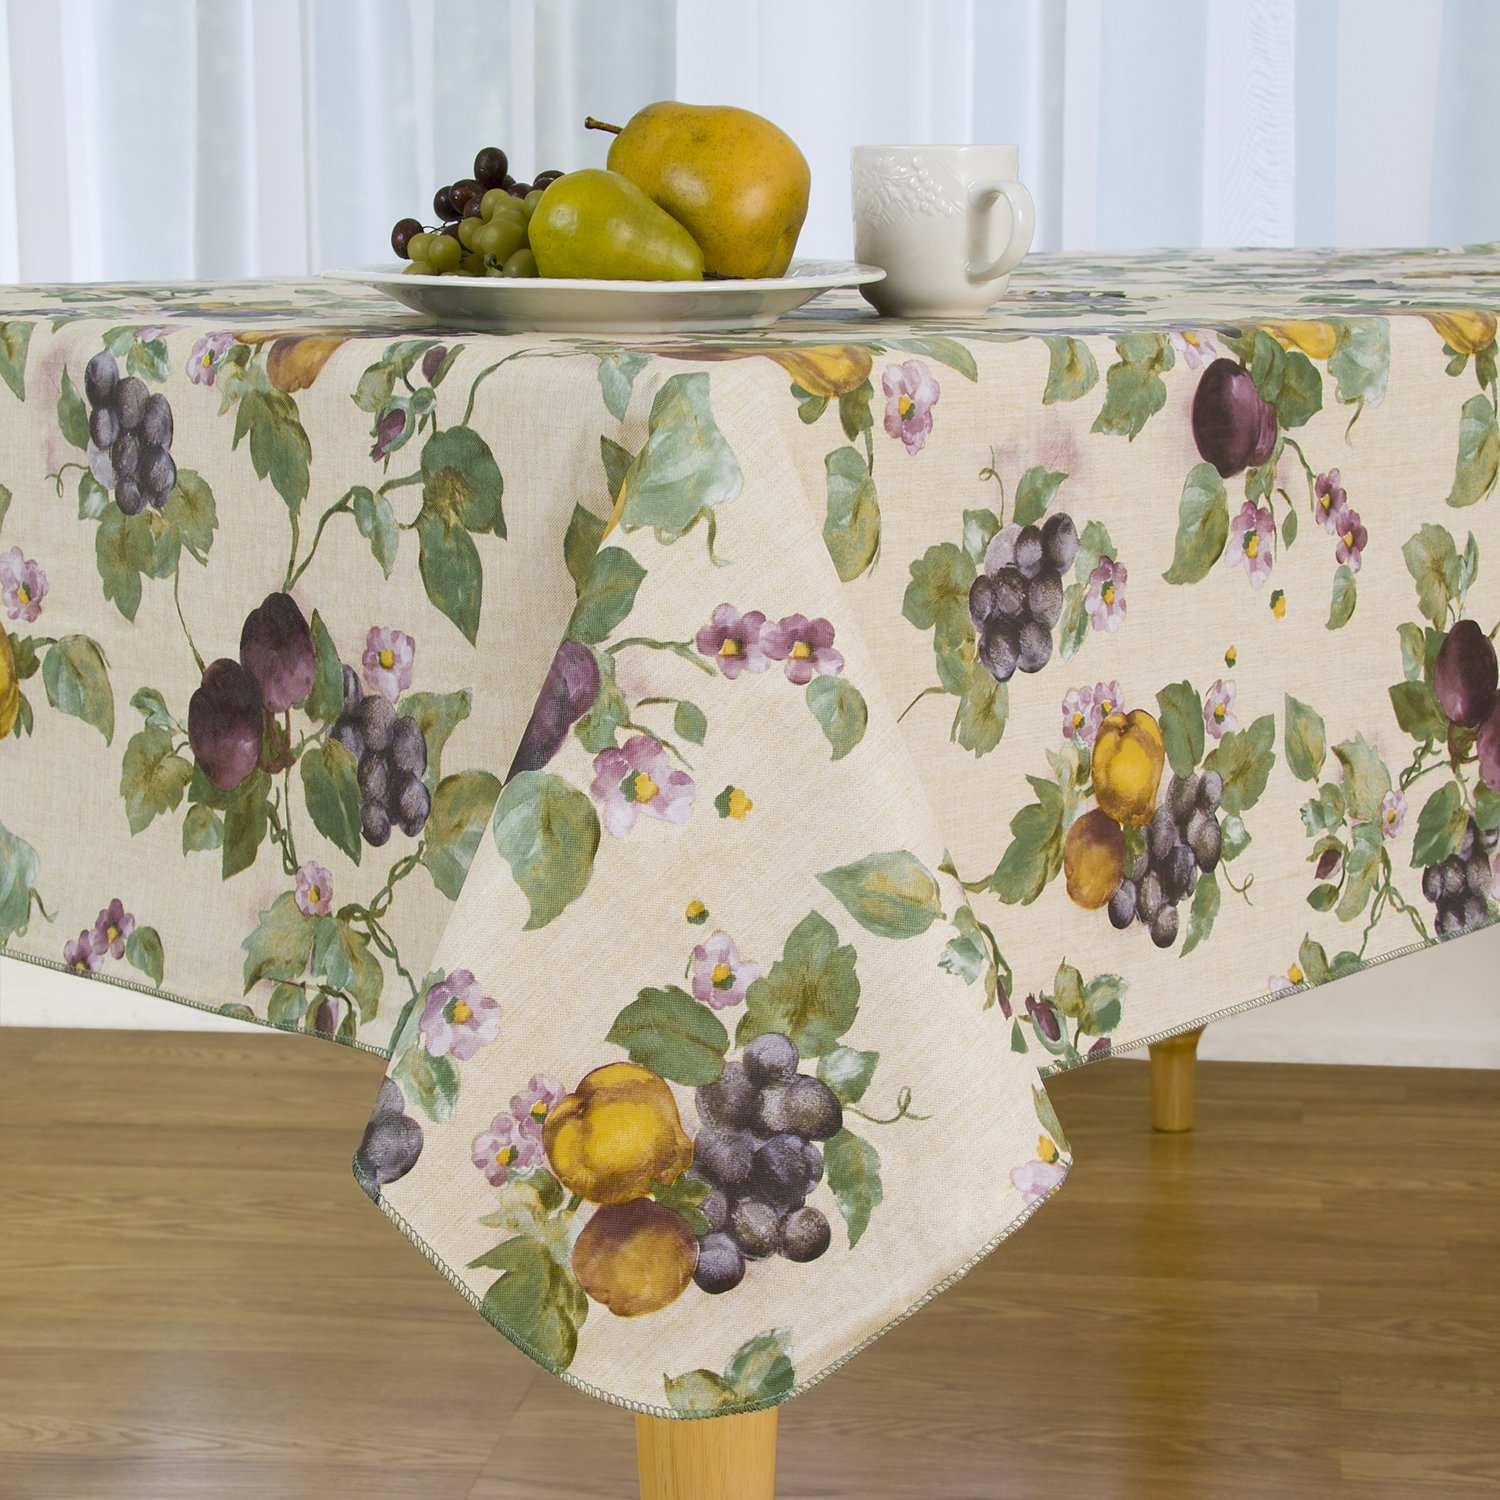 EVERYDAY LUXURIES Fresco Fruit Flannel Backed Vinyl Tablecloth, 60'' Round [Kitchen]